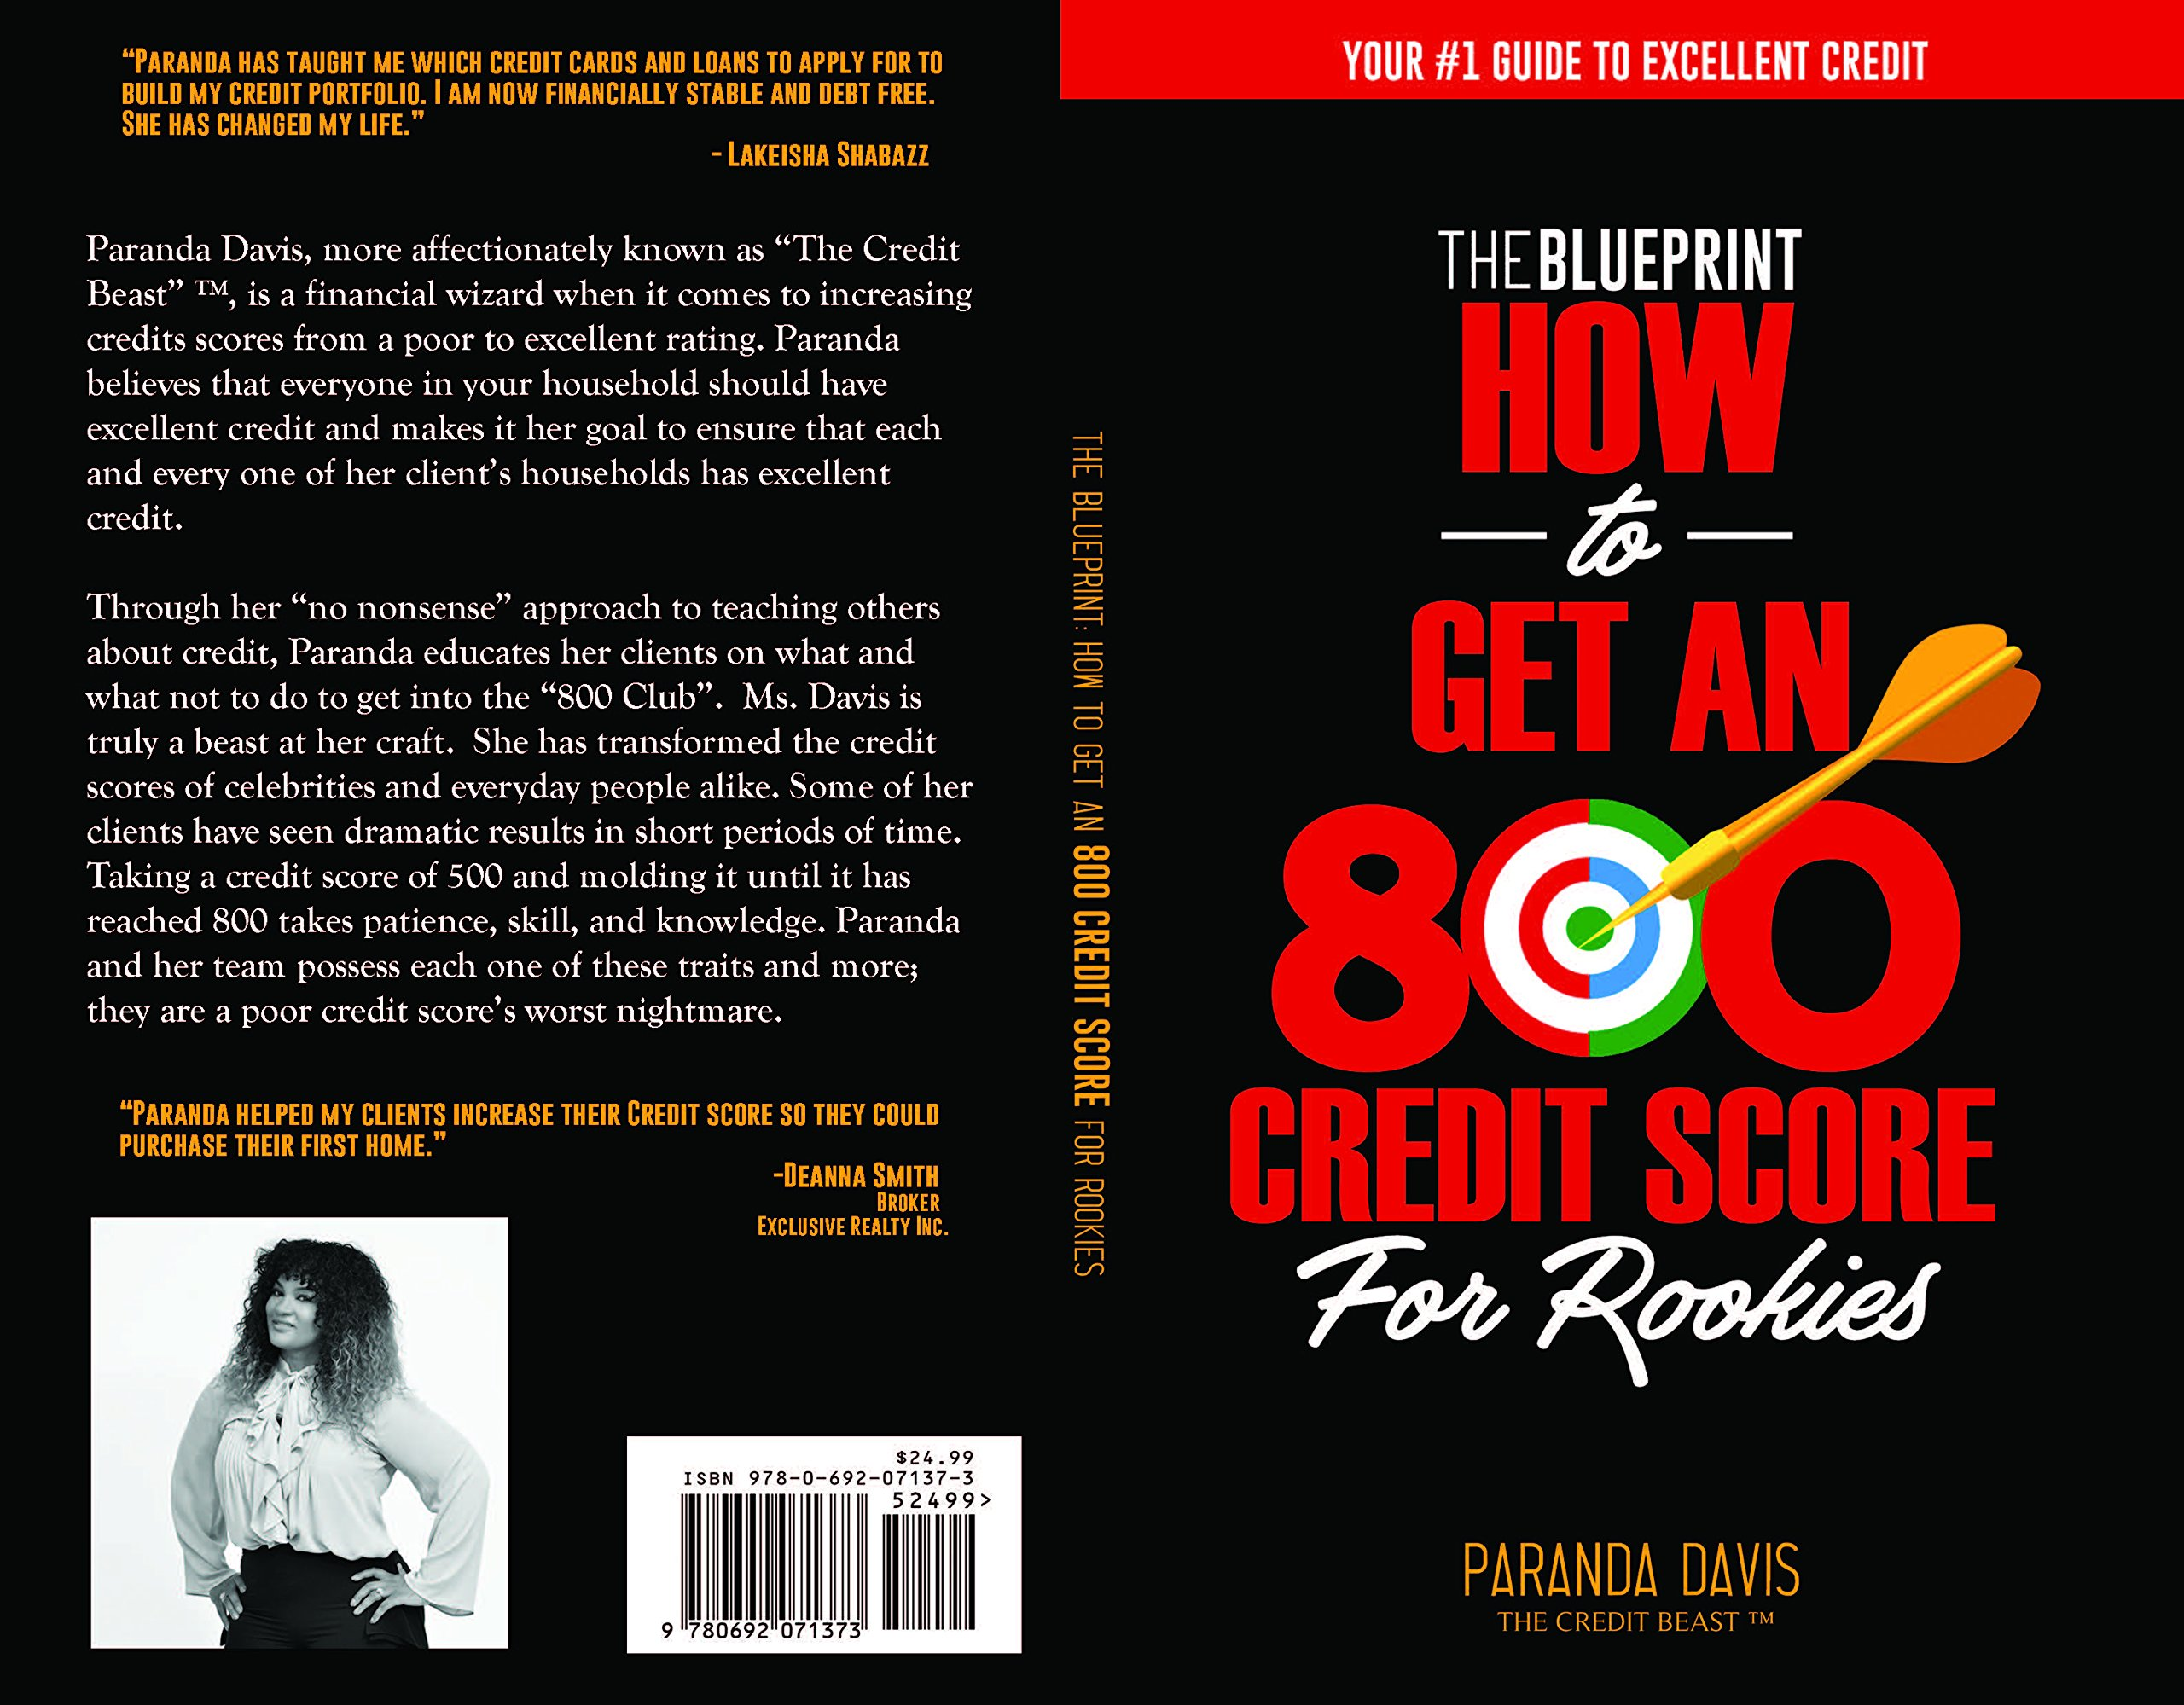 How to get an 800 credit score for rookies the blueprint paranda how to get an 800 credit score for rookies the blueprint paranda davis 9780692071373 amazon books malvernweather Images